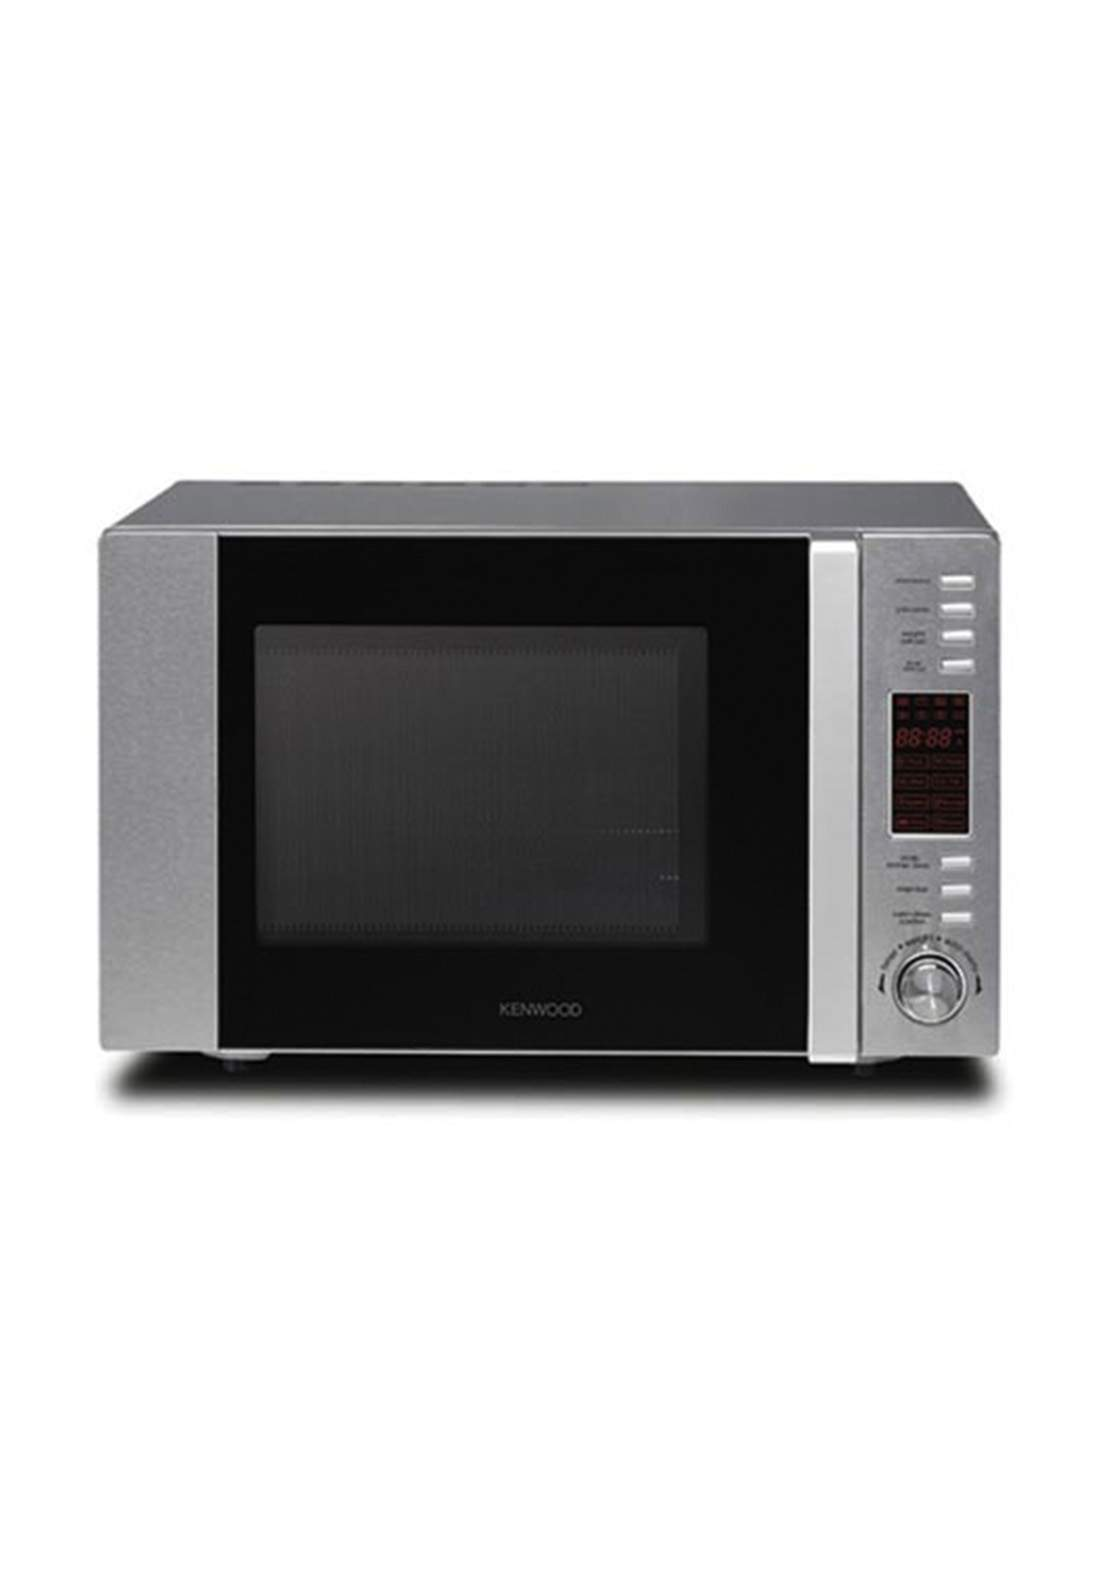 Kenwood MWL311   Microwave Oven with Grill   مايكروويف طعام